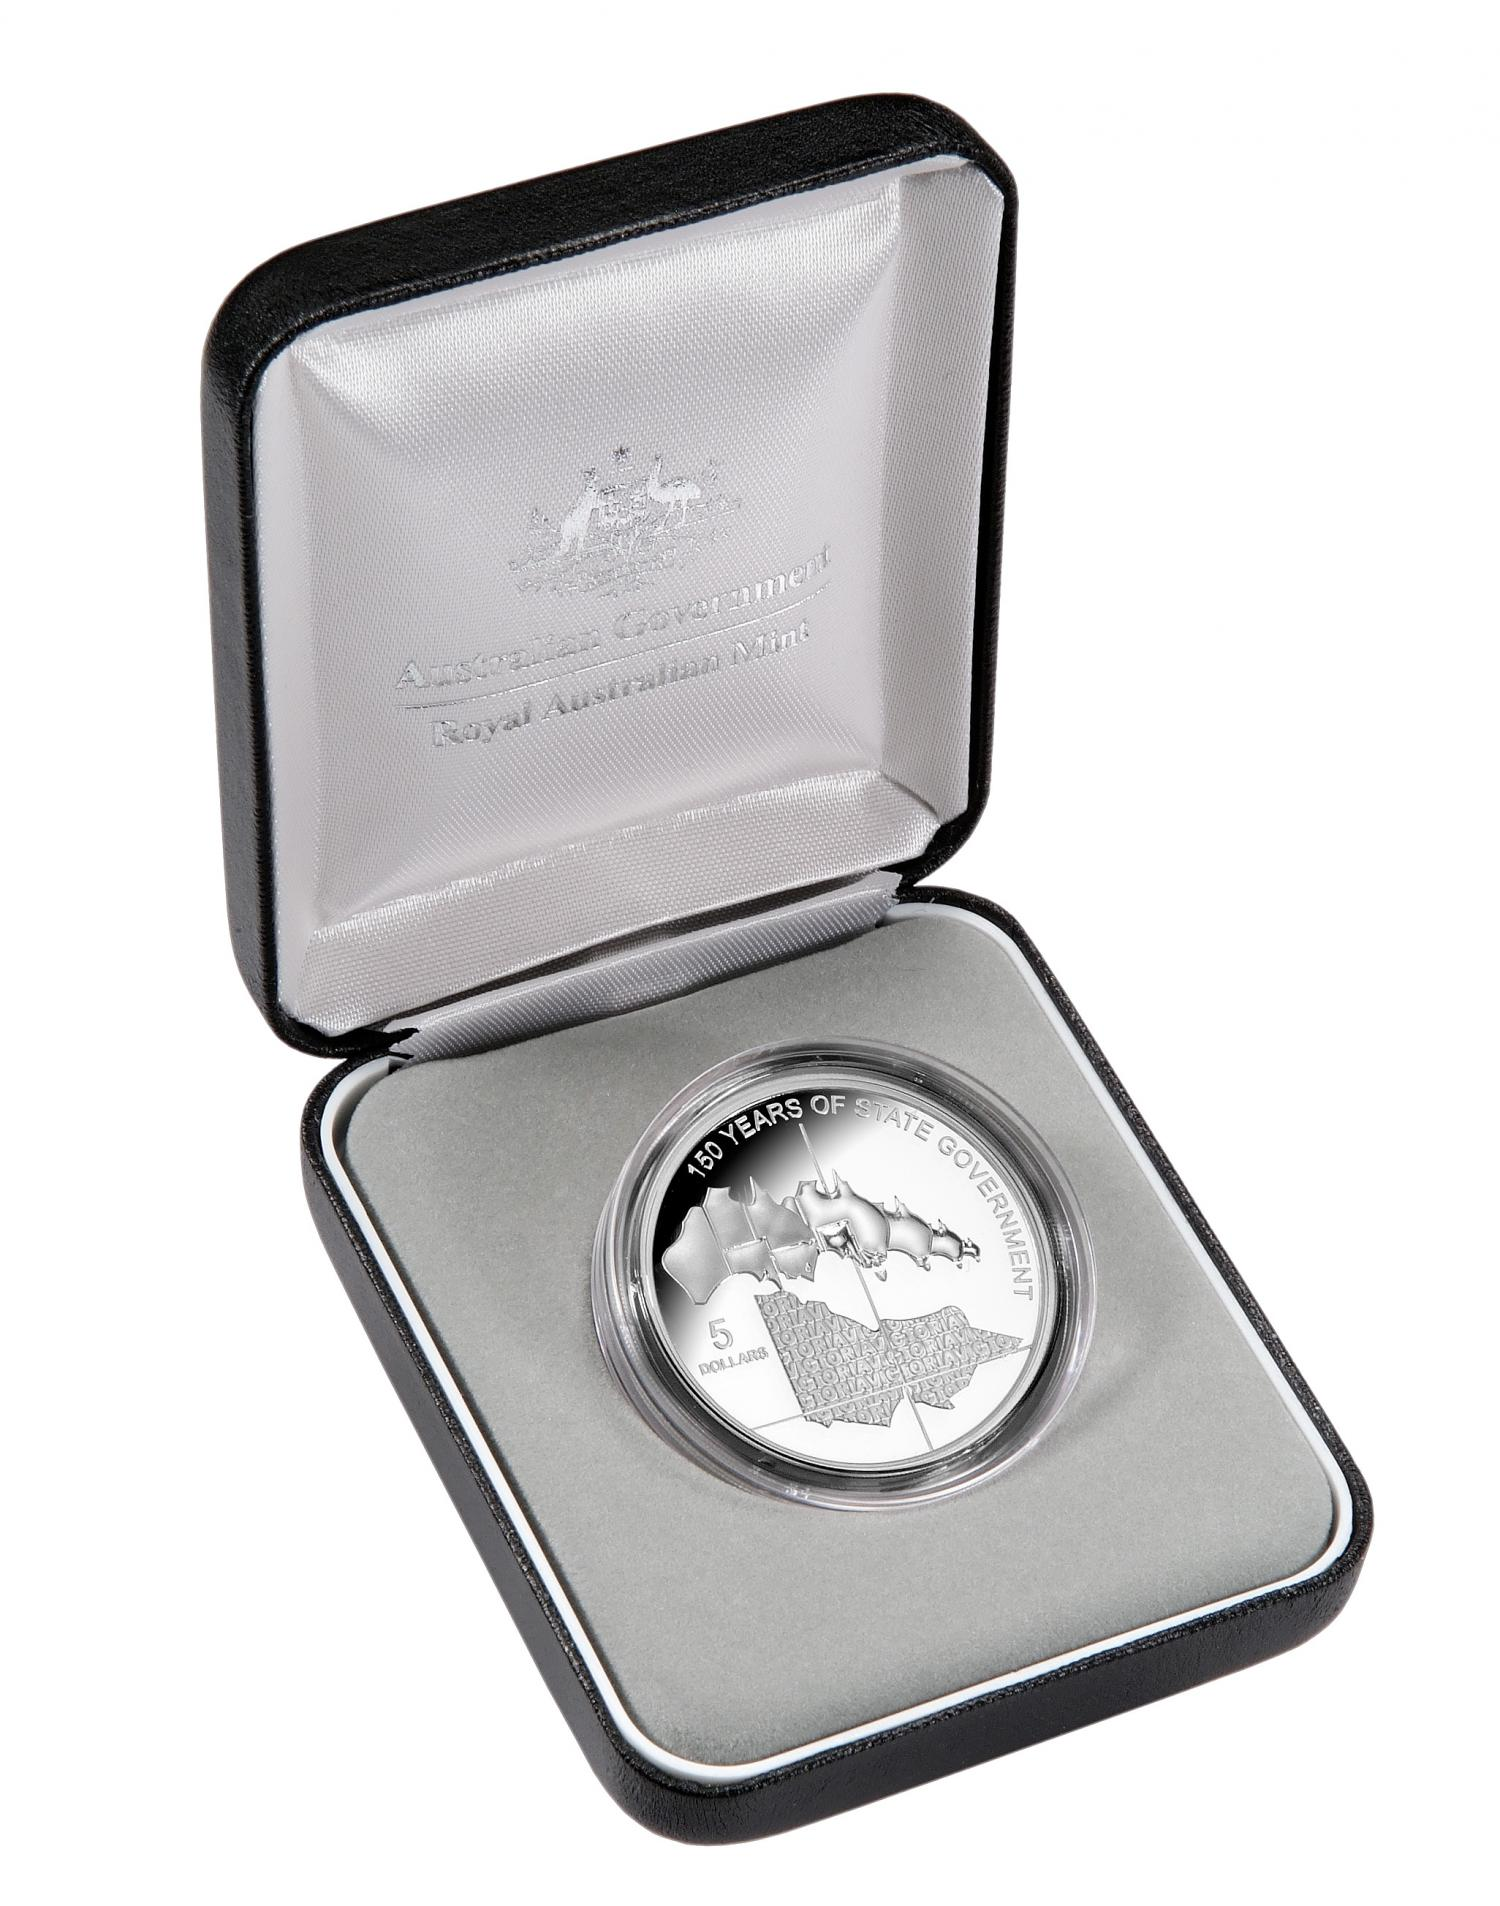 Thumbnail for 2006 $5.00 Silver Proof Victoria 150 Years of State Government